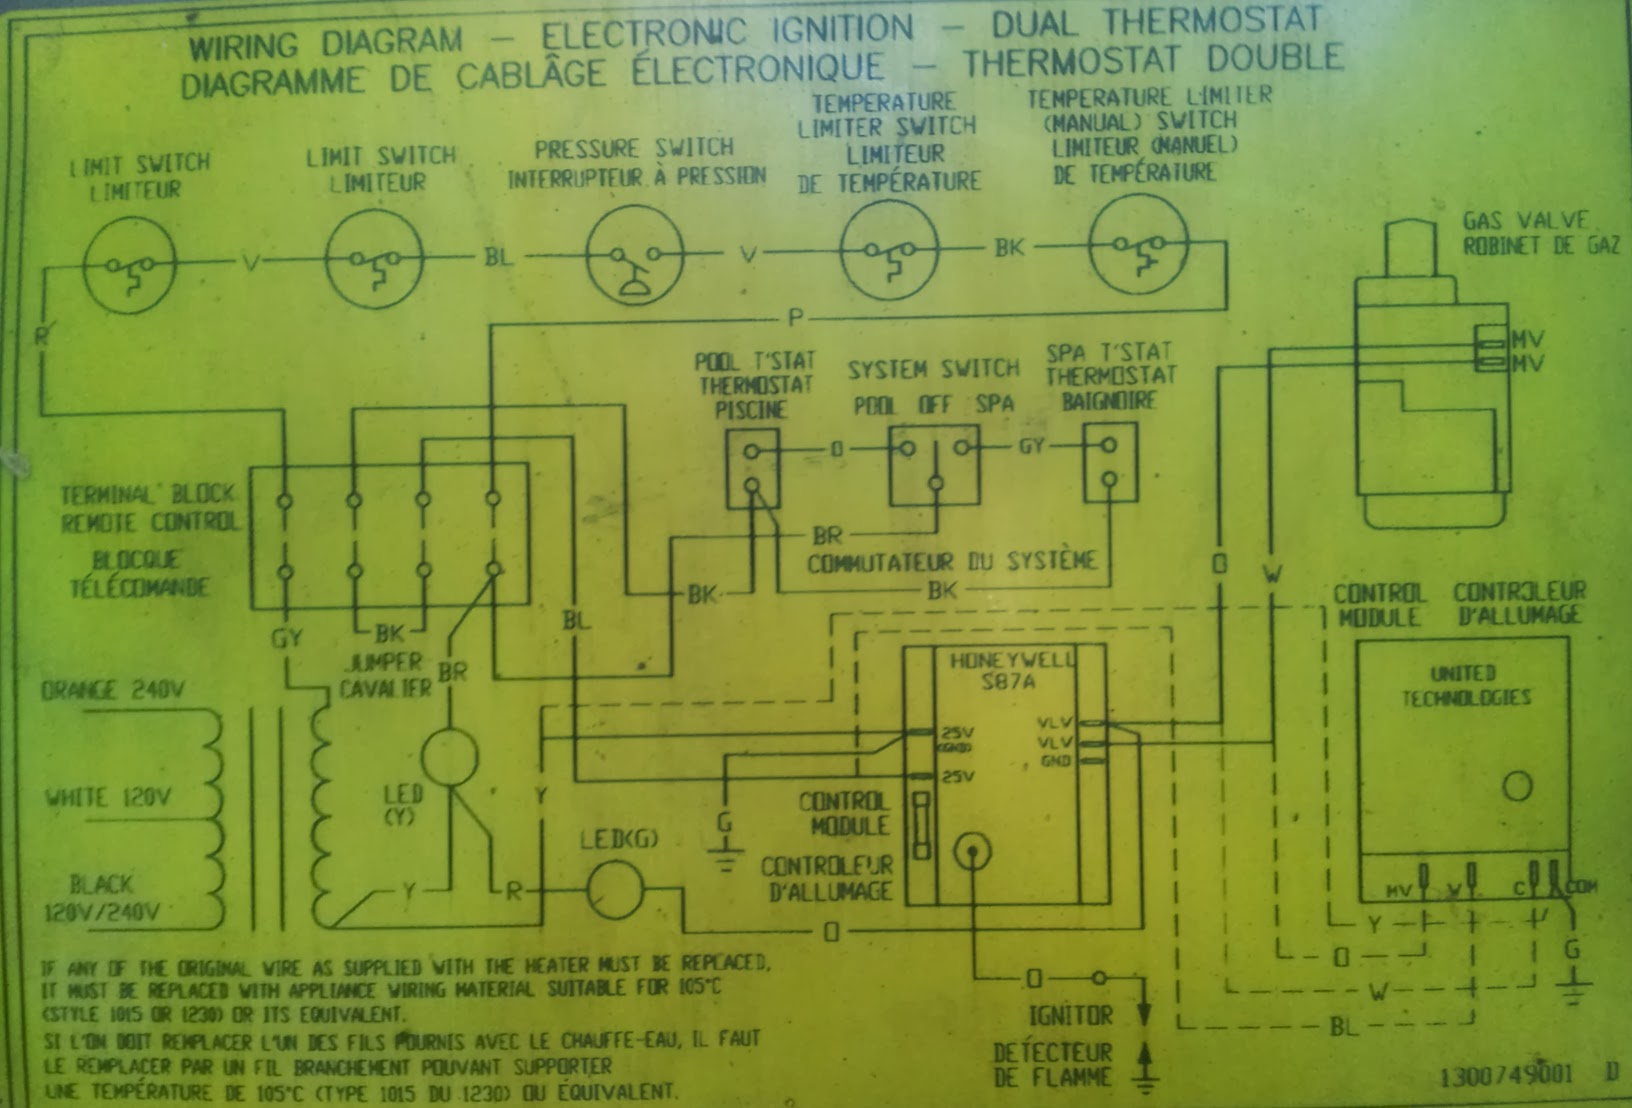 hayward heaters h series wiring diagram